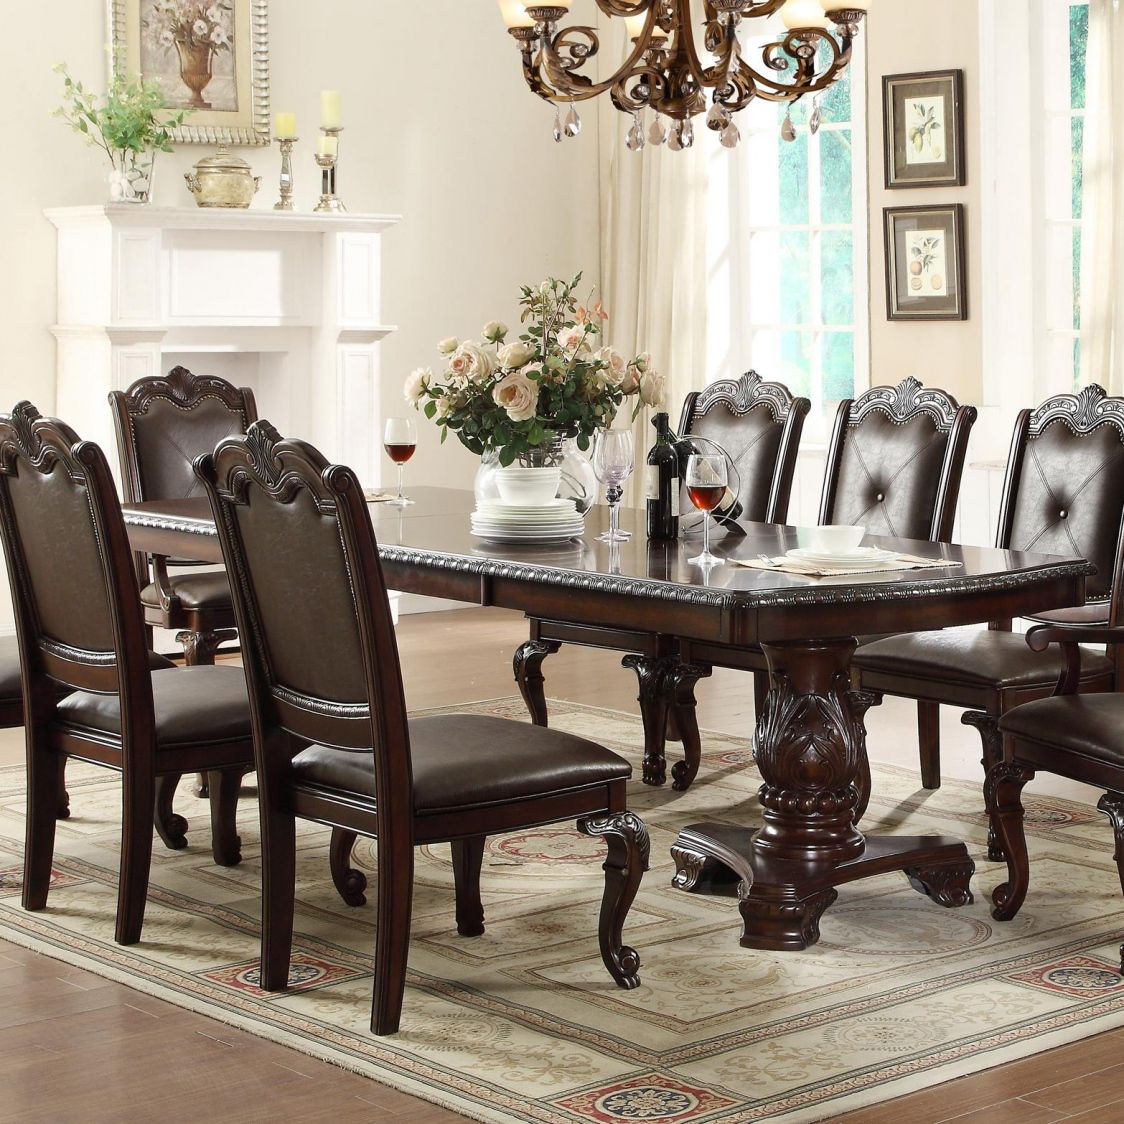 Dining Room Tables Phoenix   Best Paint For Furniture Check More At  Http://1pureedm.com/dining Room Tables Phoenix/